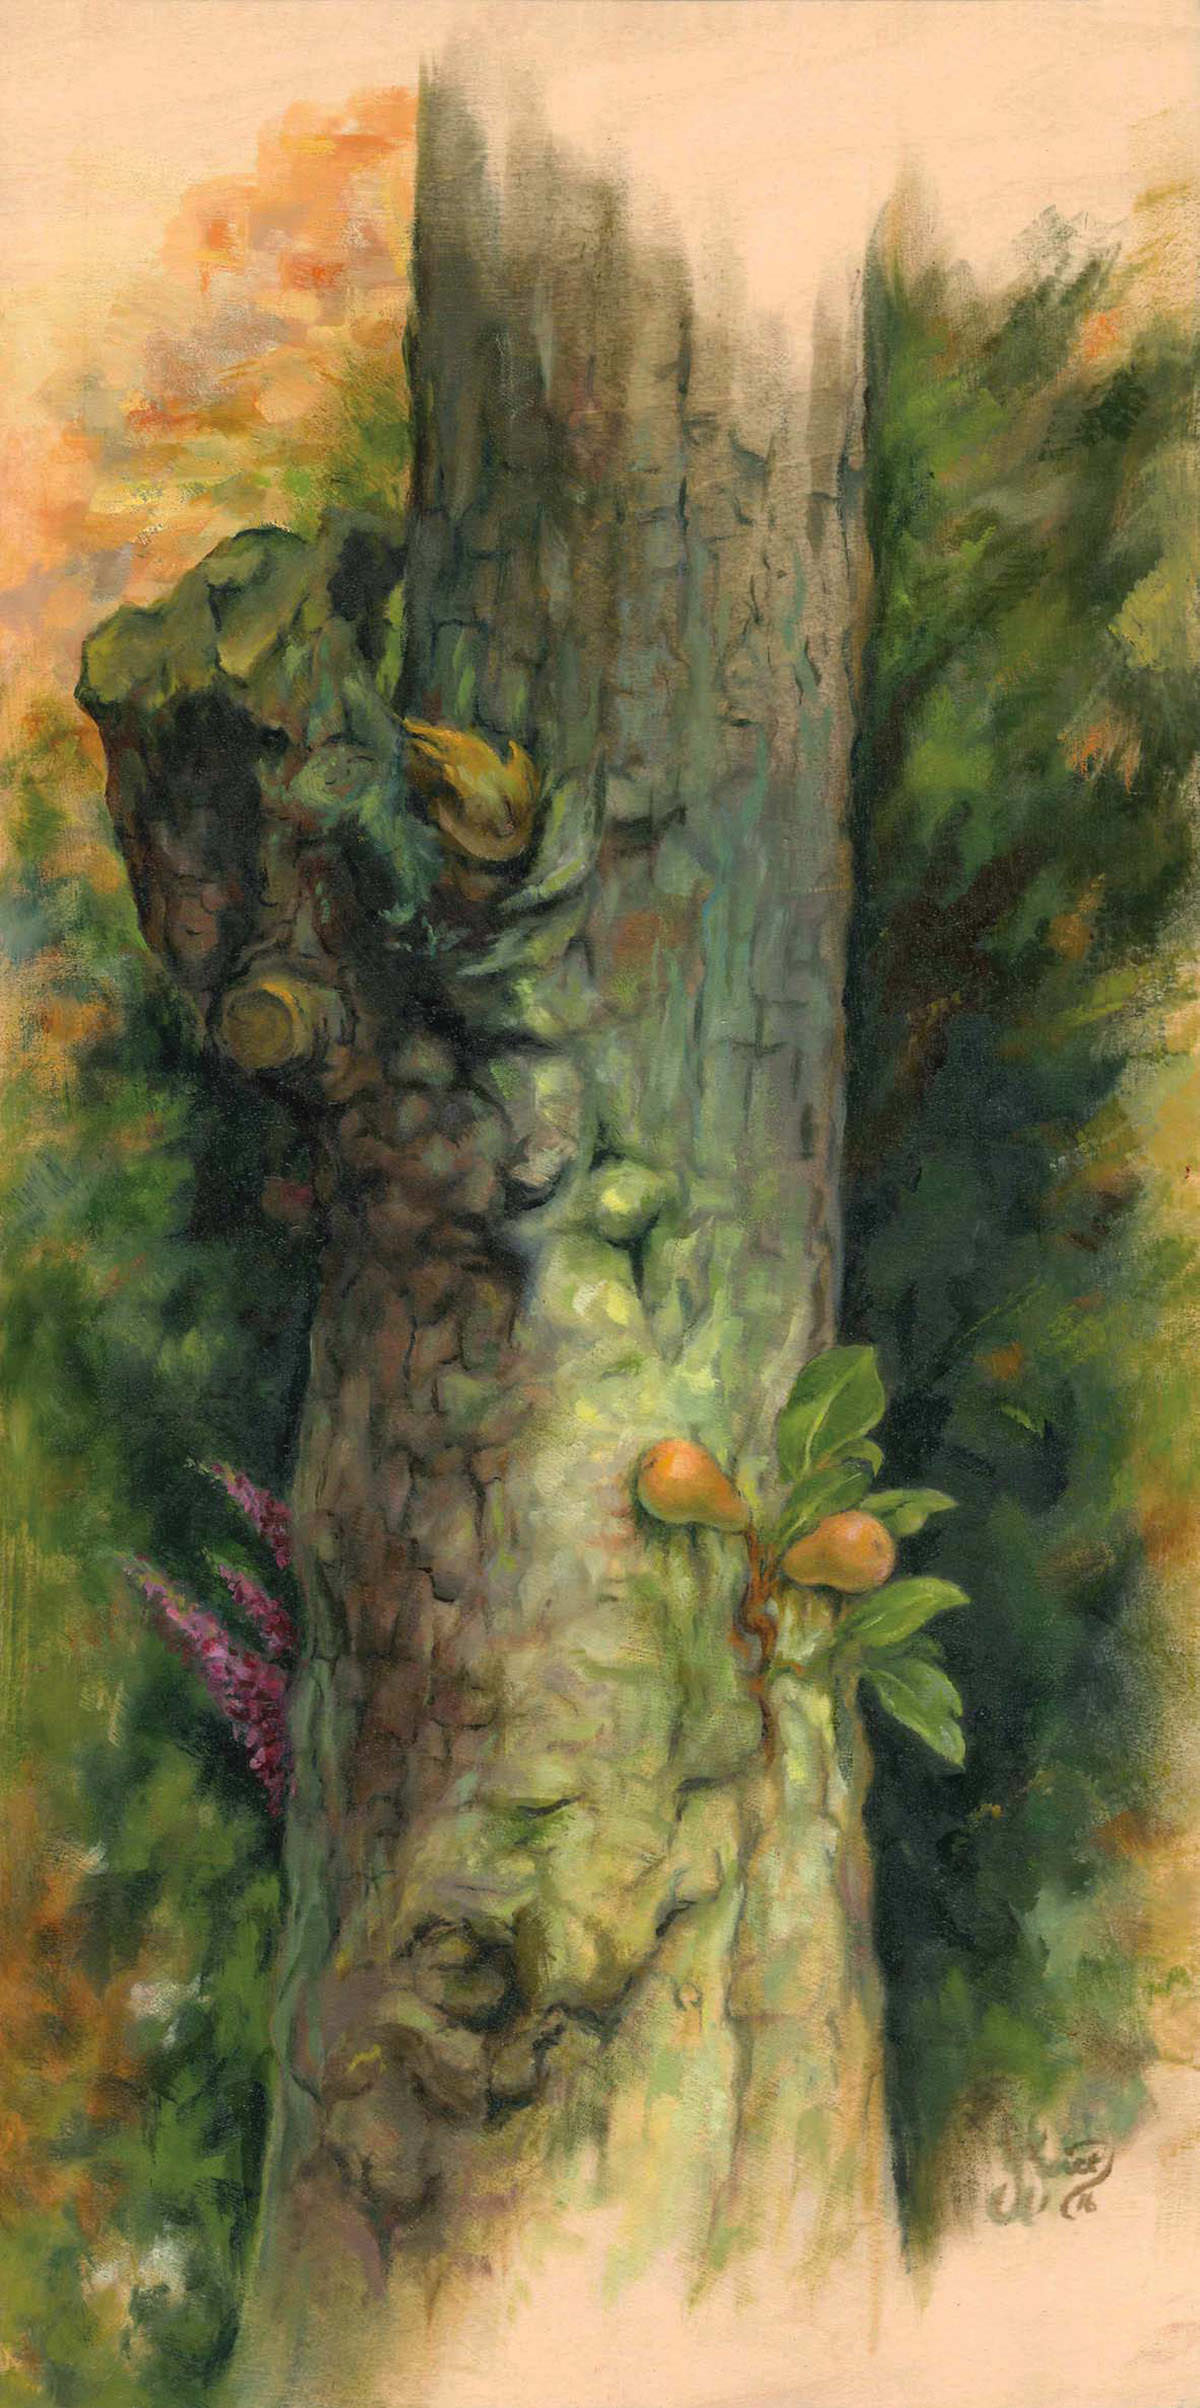 Ageing Pear Tree - Oil on wood - 40 x 20 cm